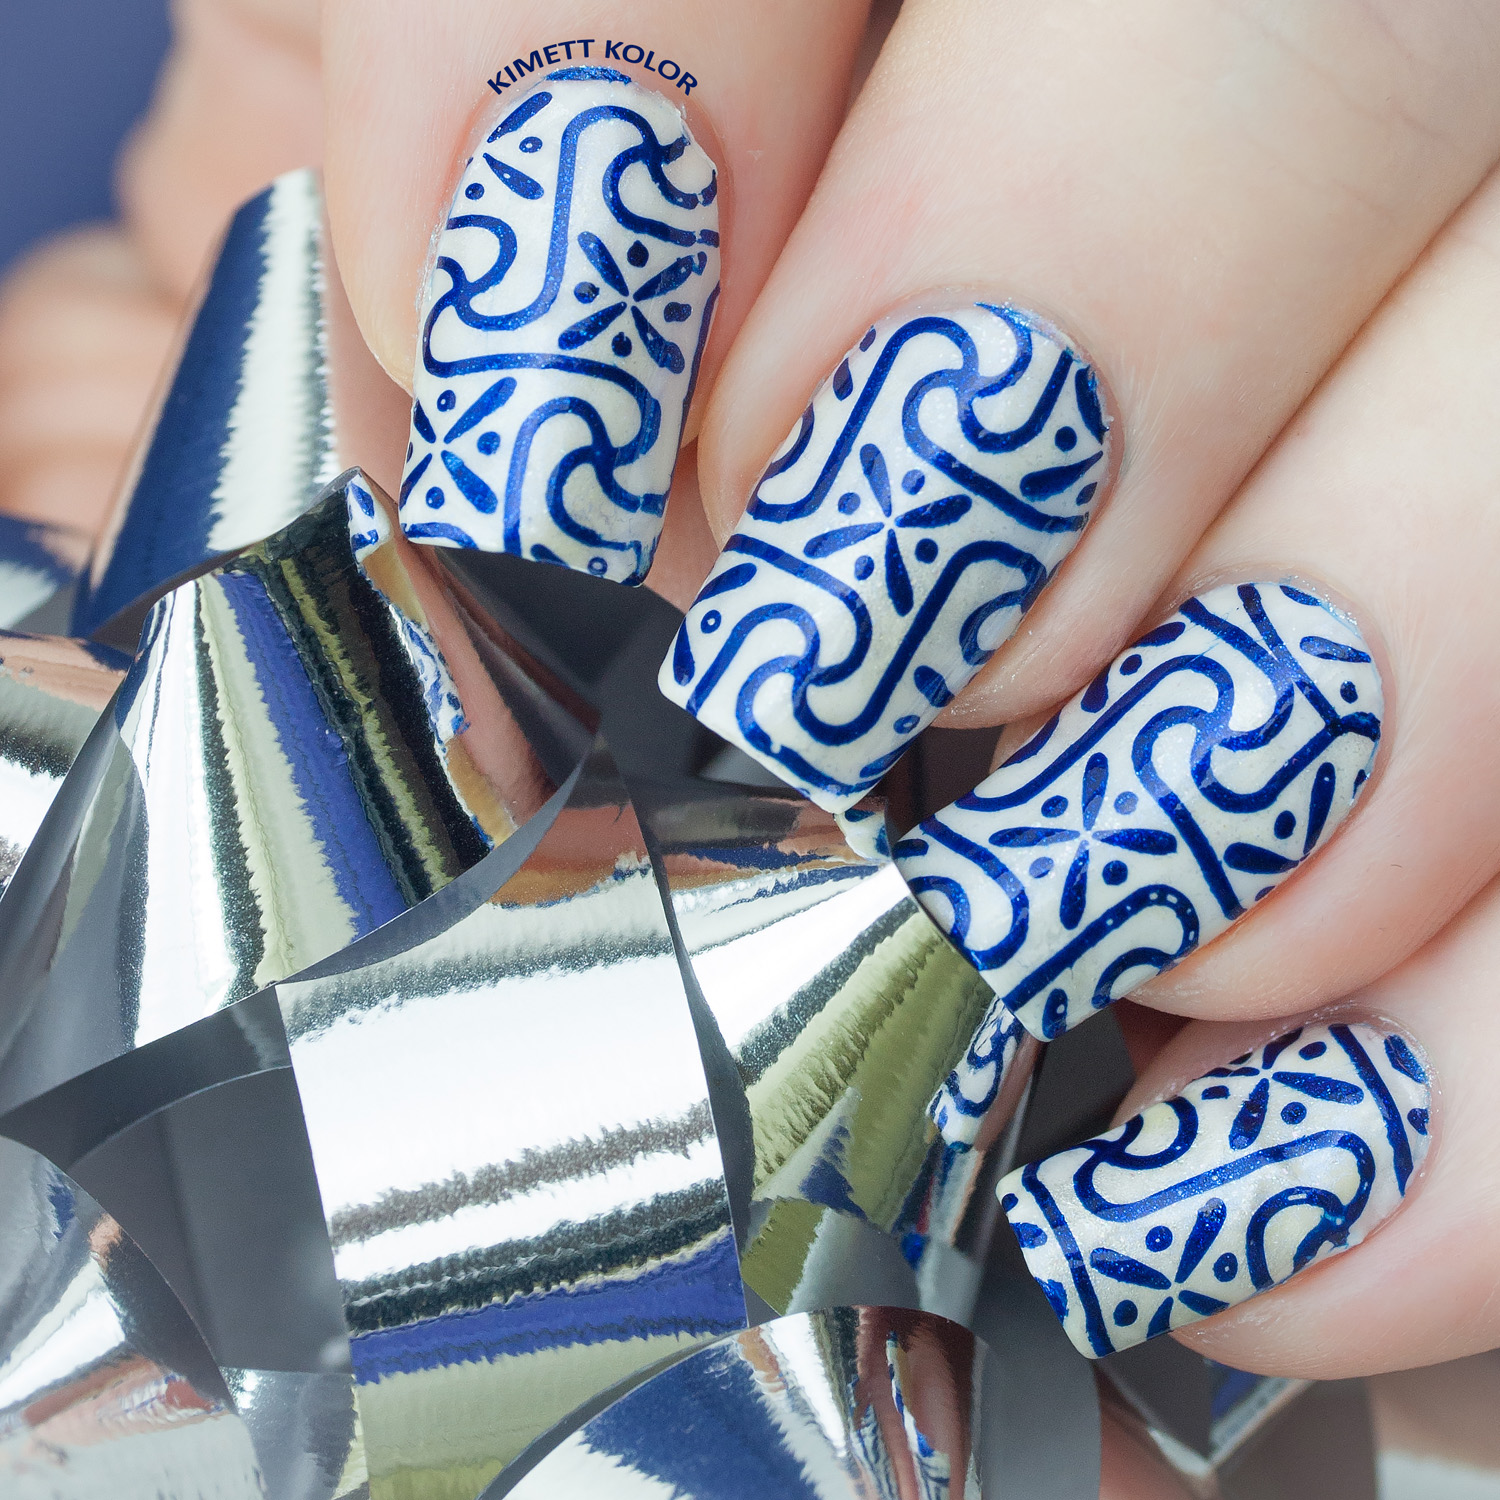 KimettKolor Wrapping Paper Nails